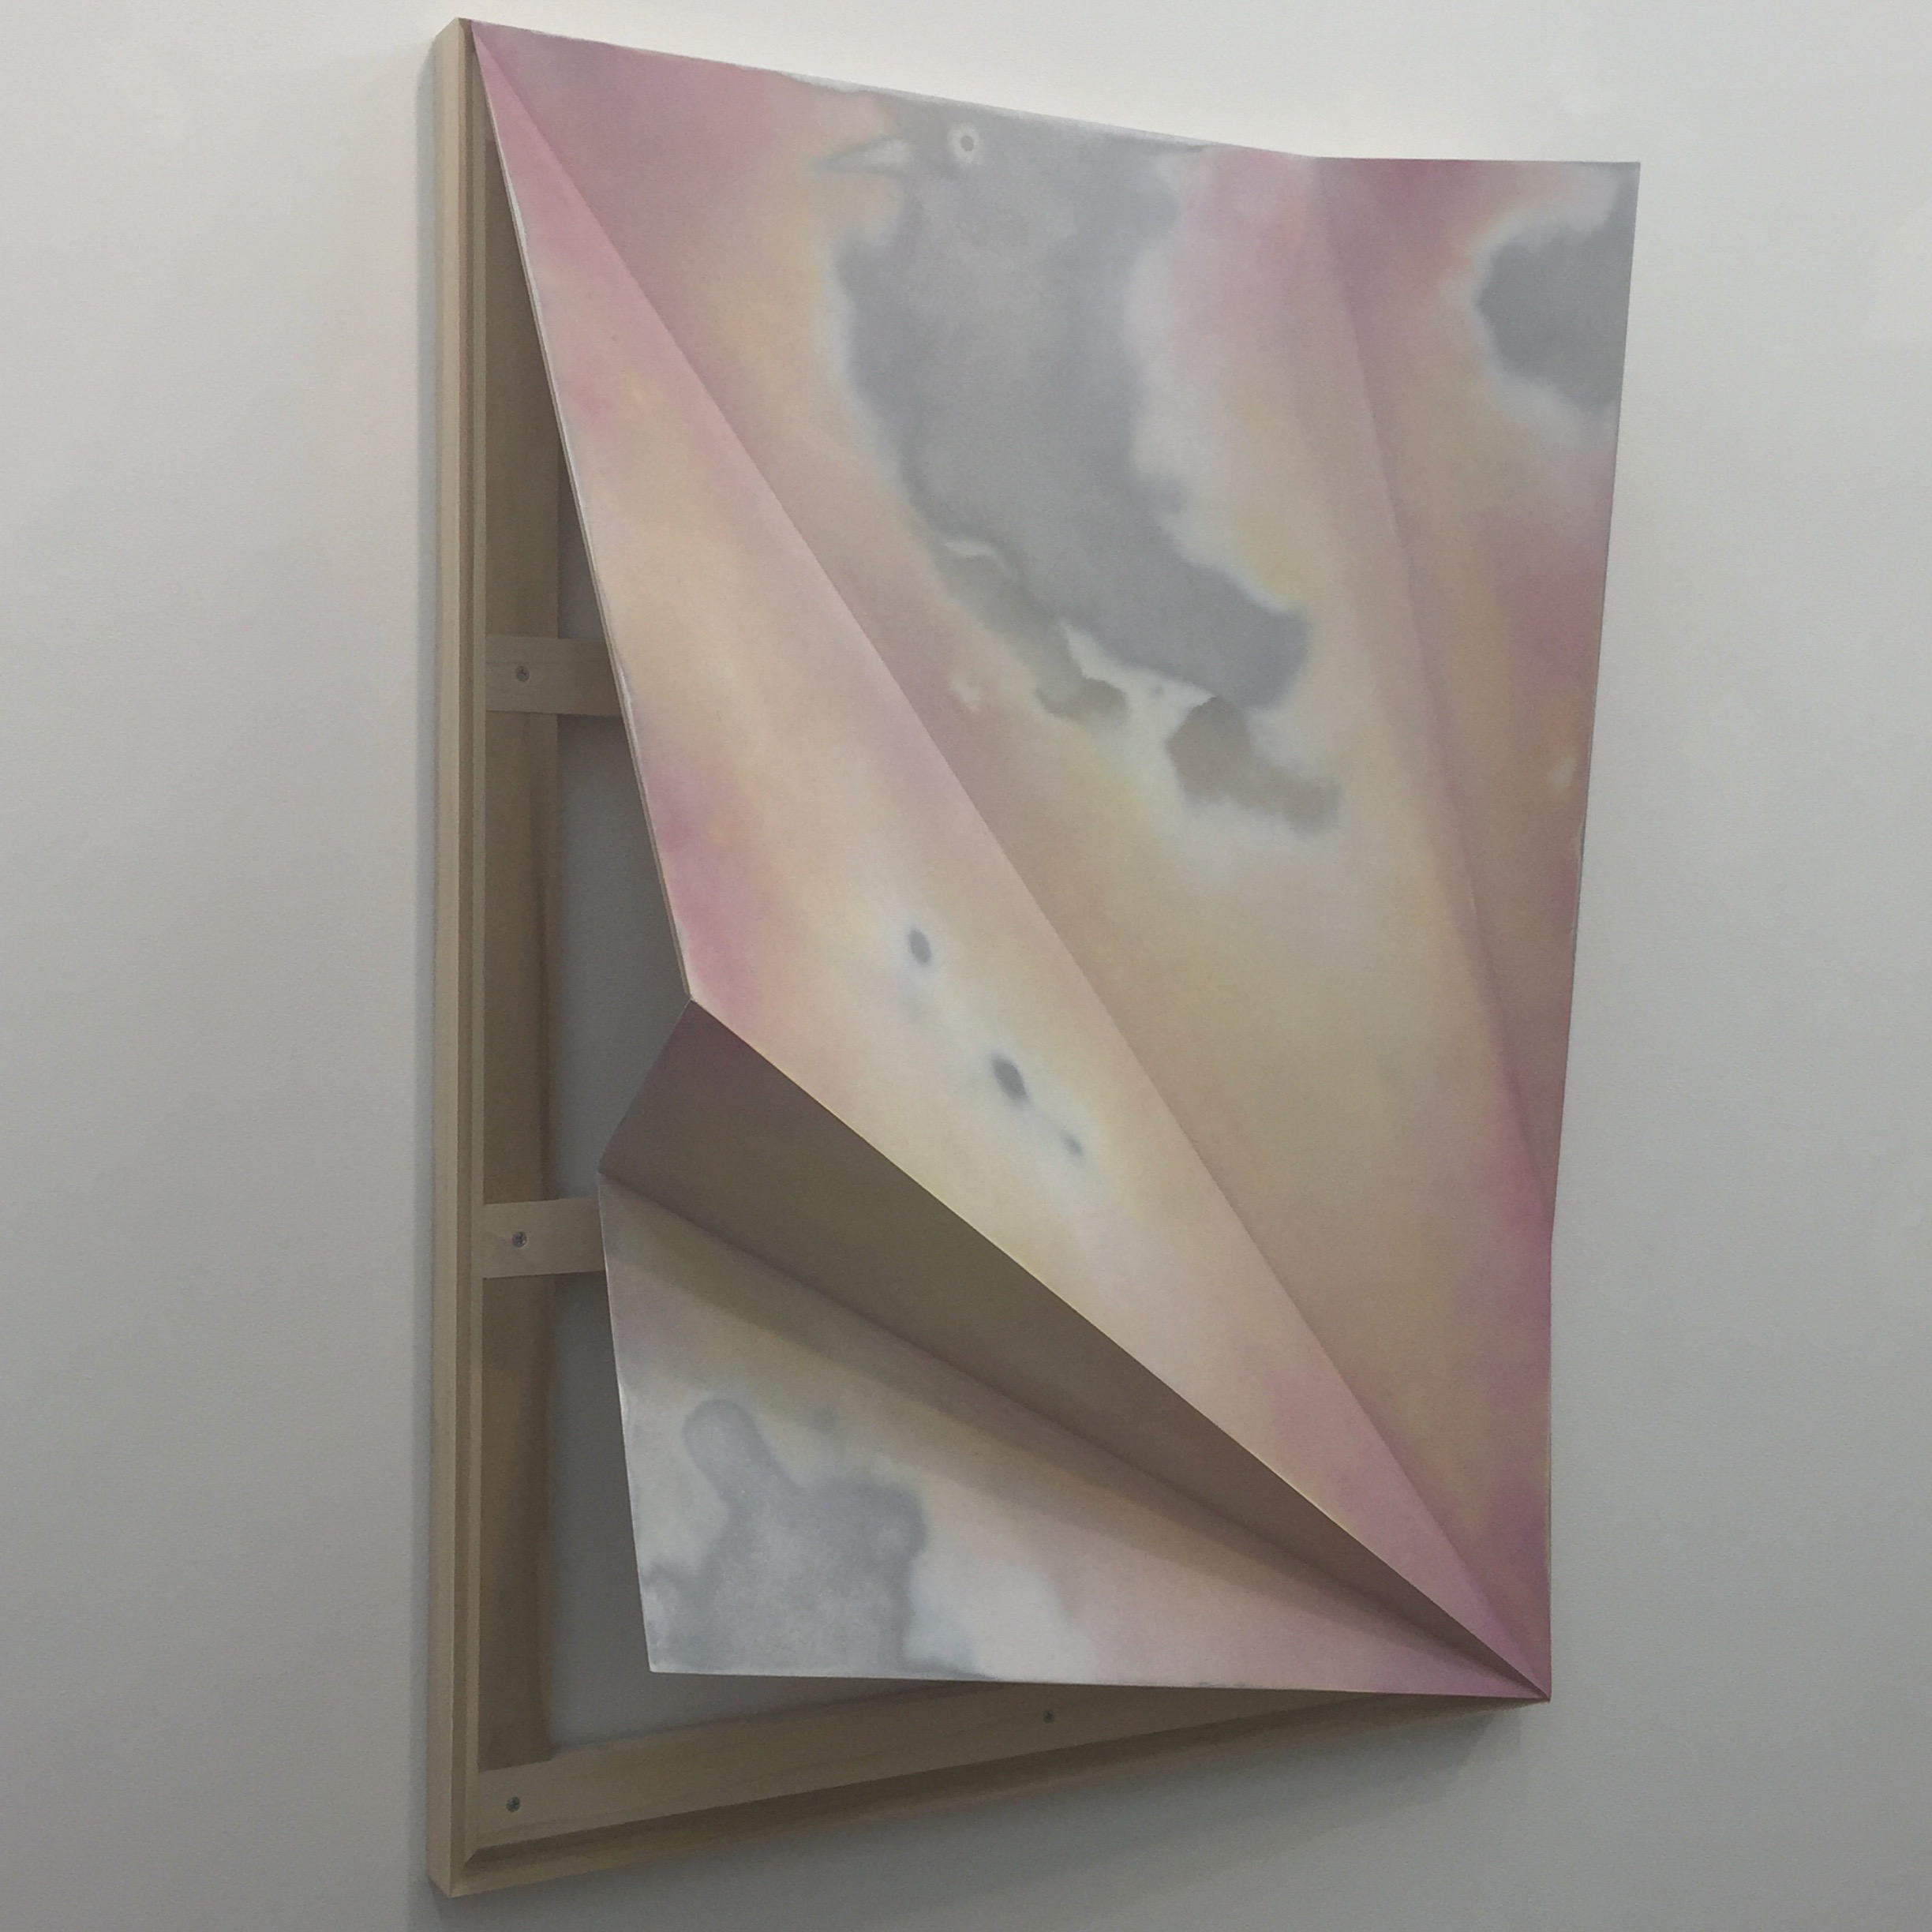 John Dante Bianchi, Untitled (Torqued Panel #15), 2016, Acrylic and aluminum on plywood panel, 40 x 30 x 9 inches